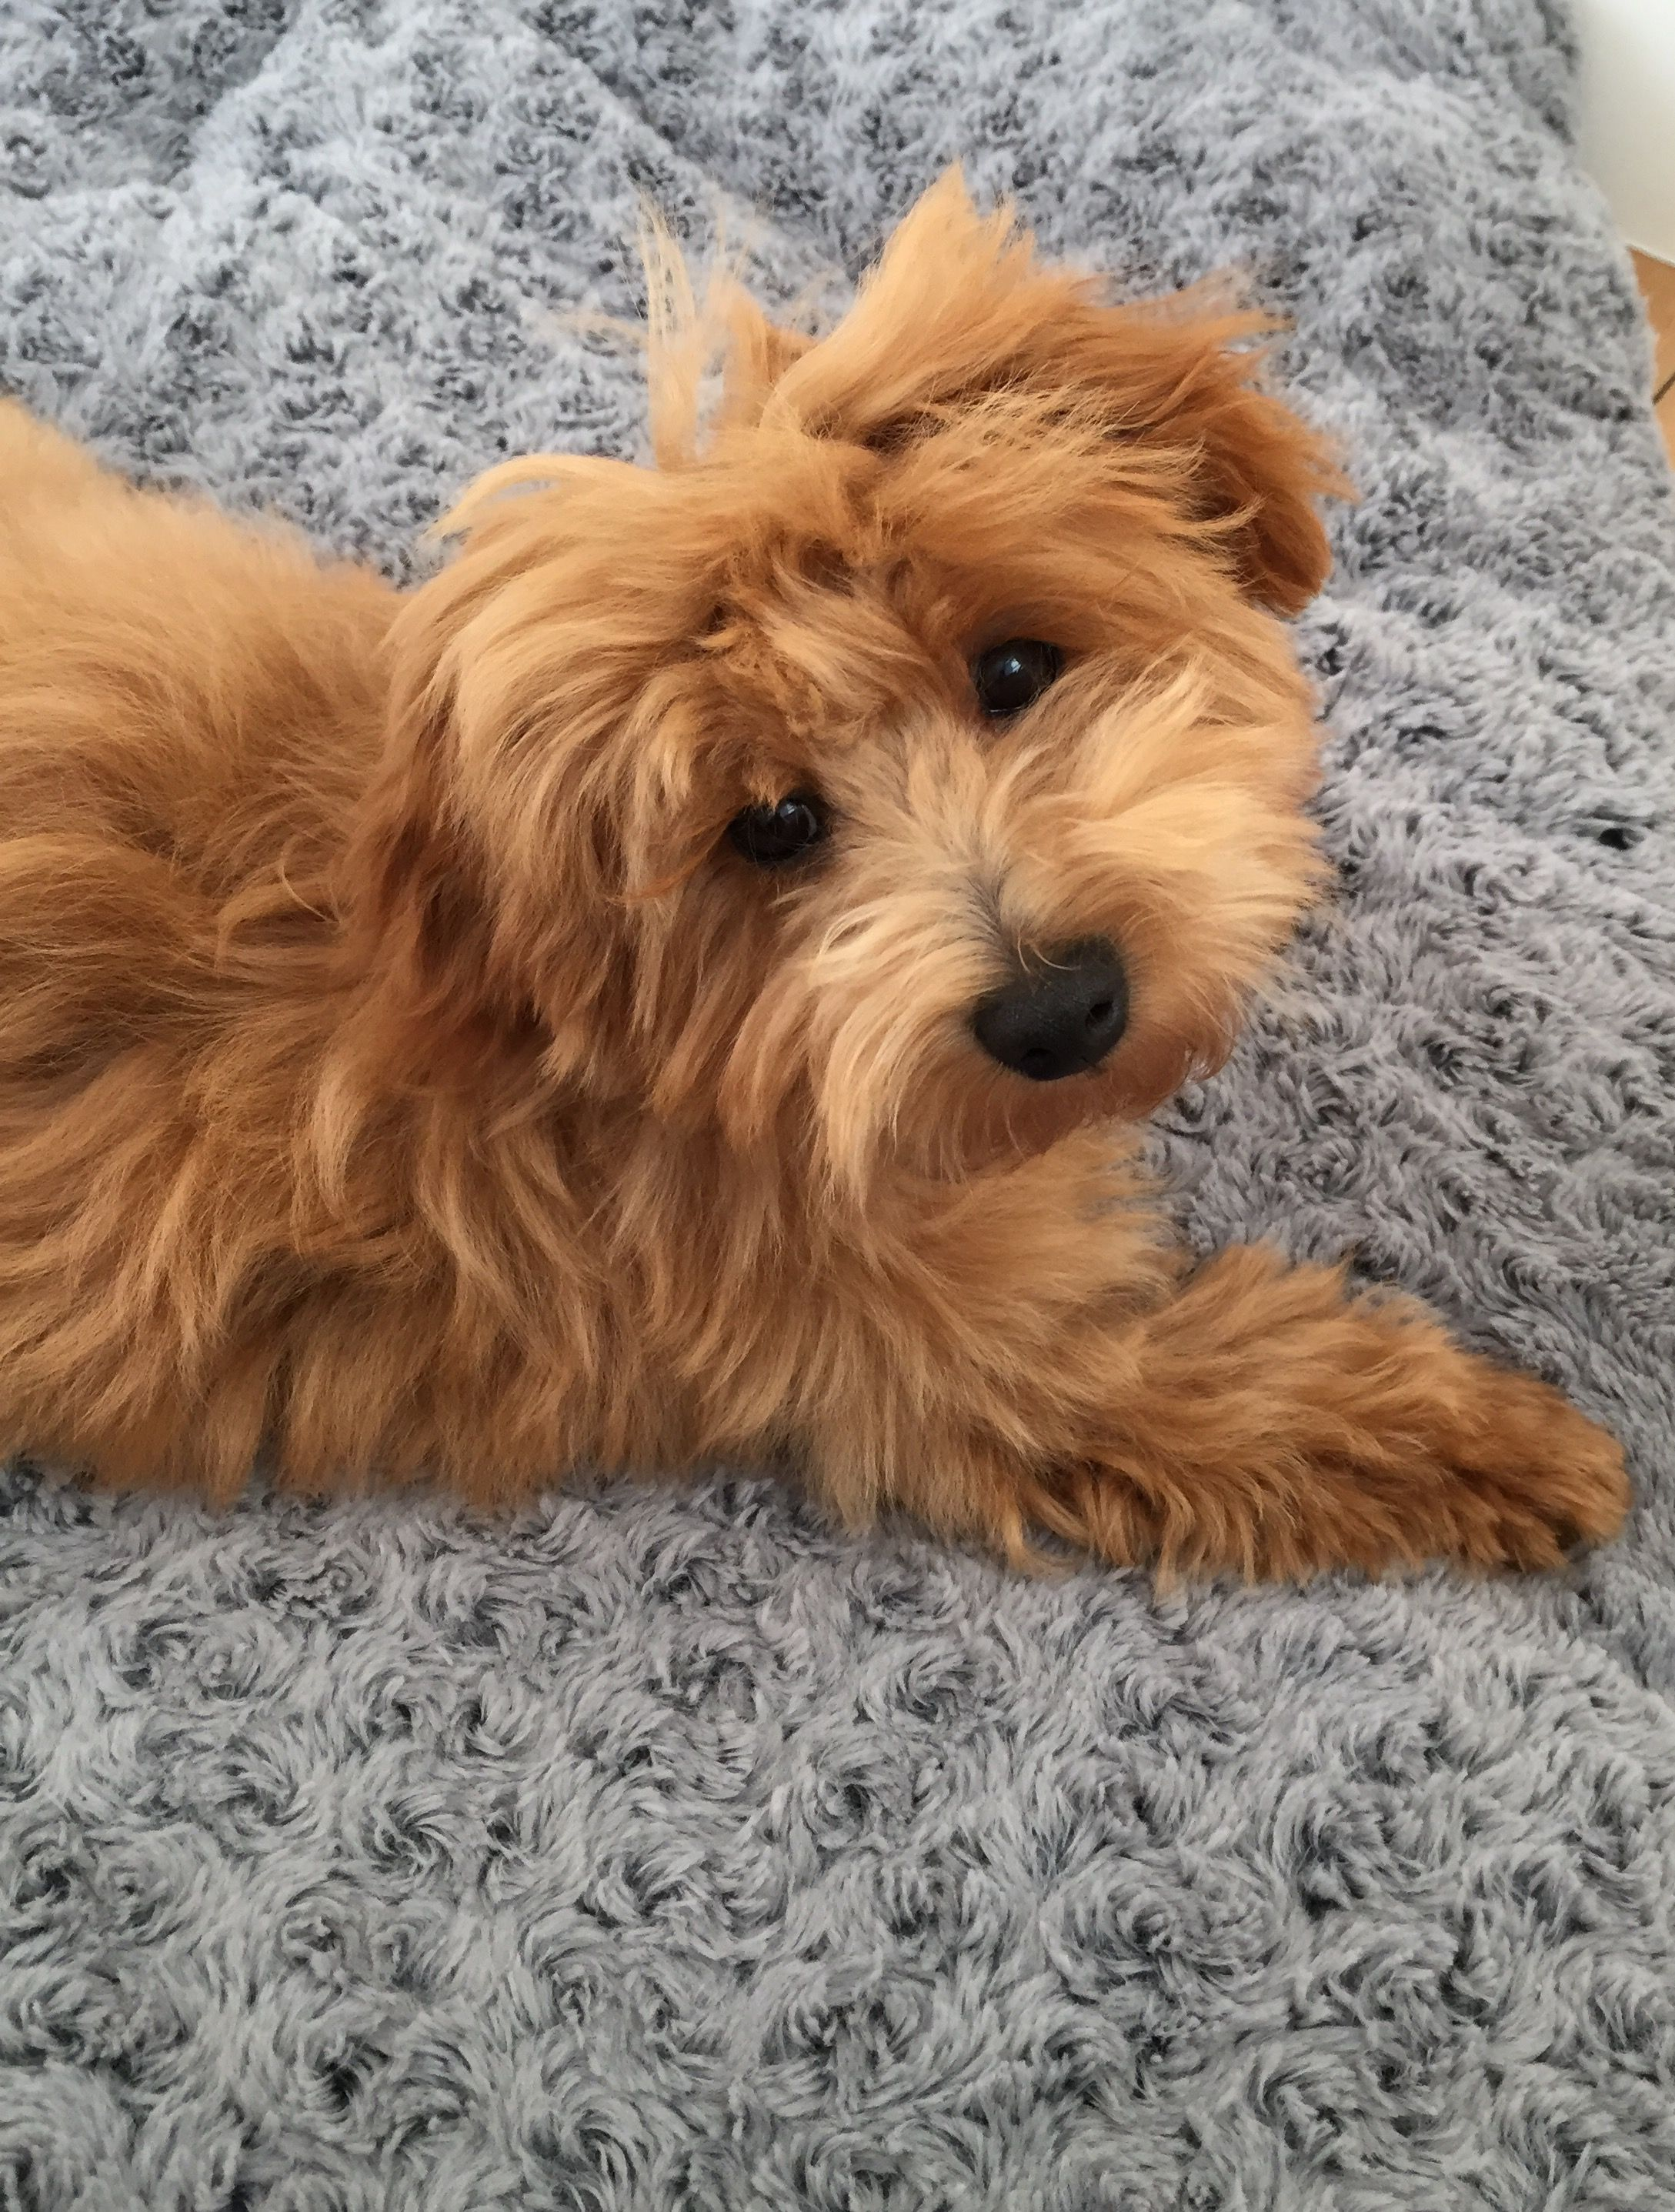 Honey The Dog Puppies Dogs Writing Advice